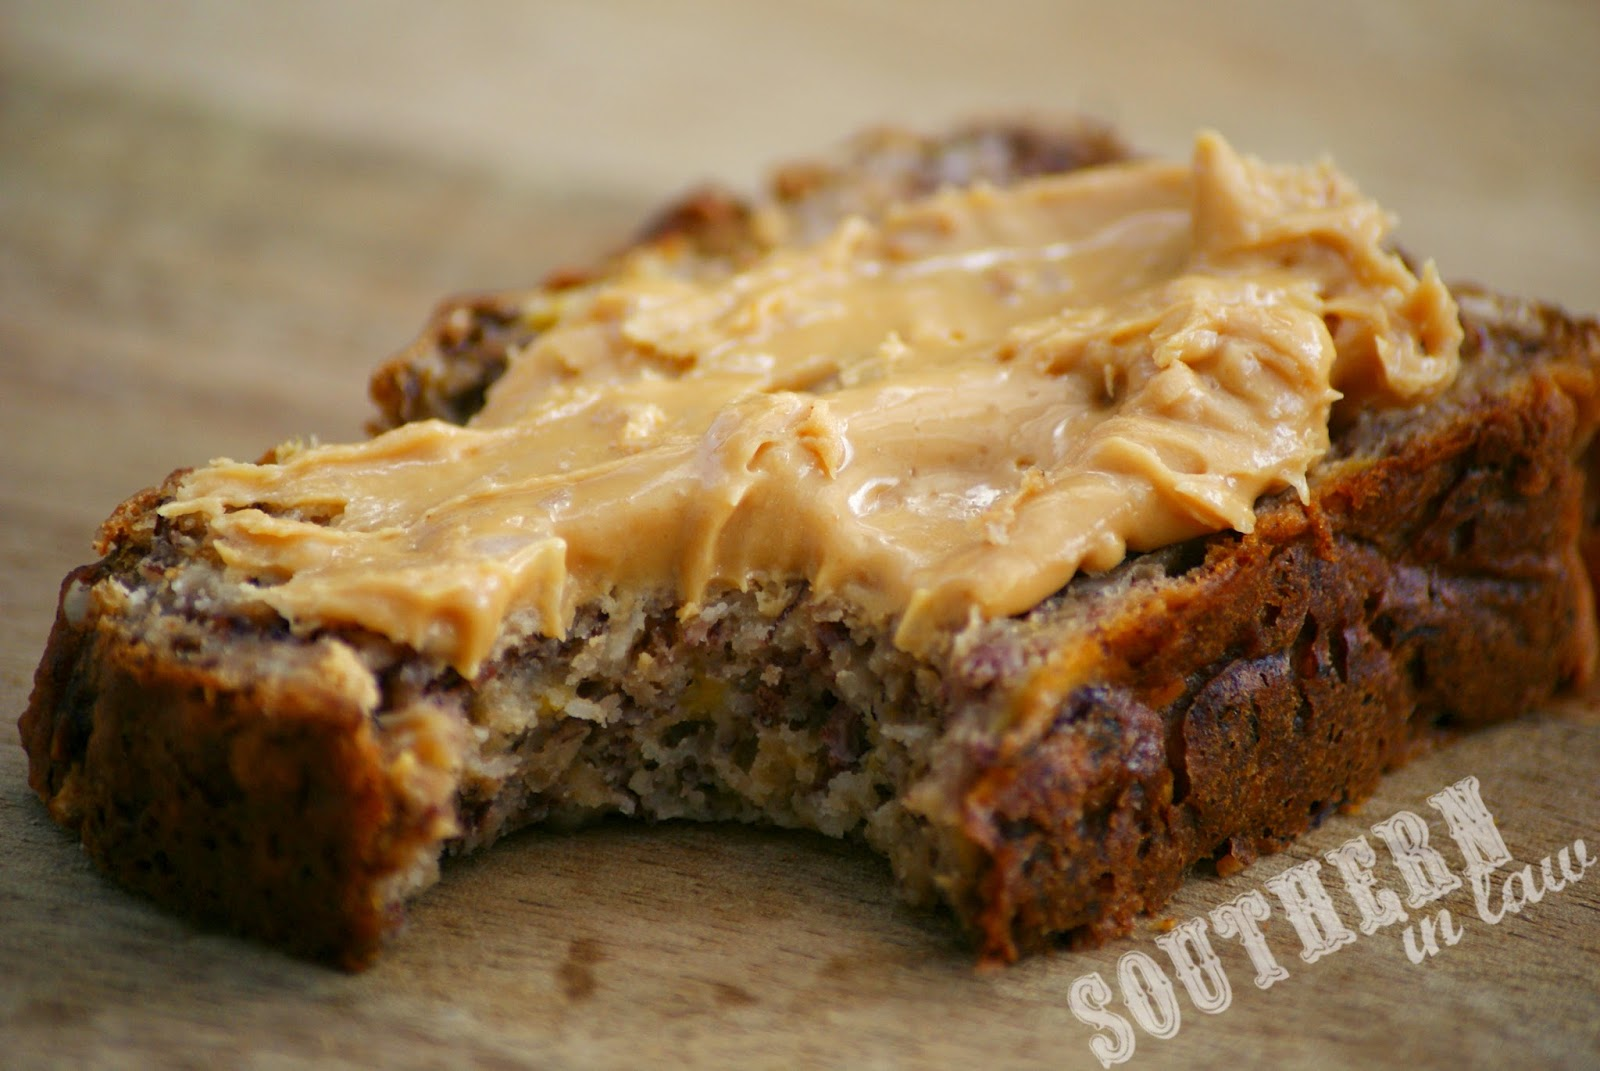 Ricotta Banana Bread with Peanut Butter and Coconut Oil